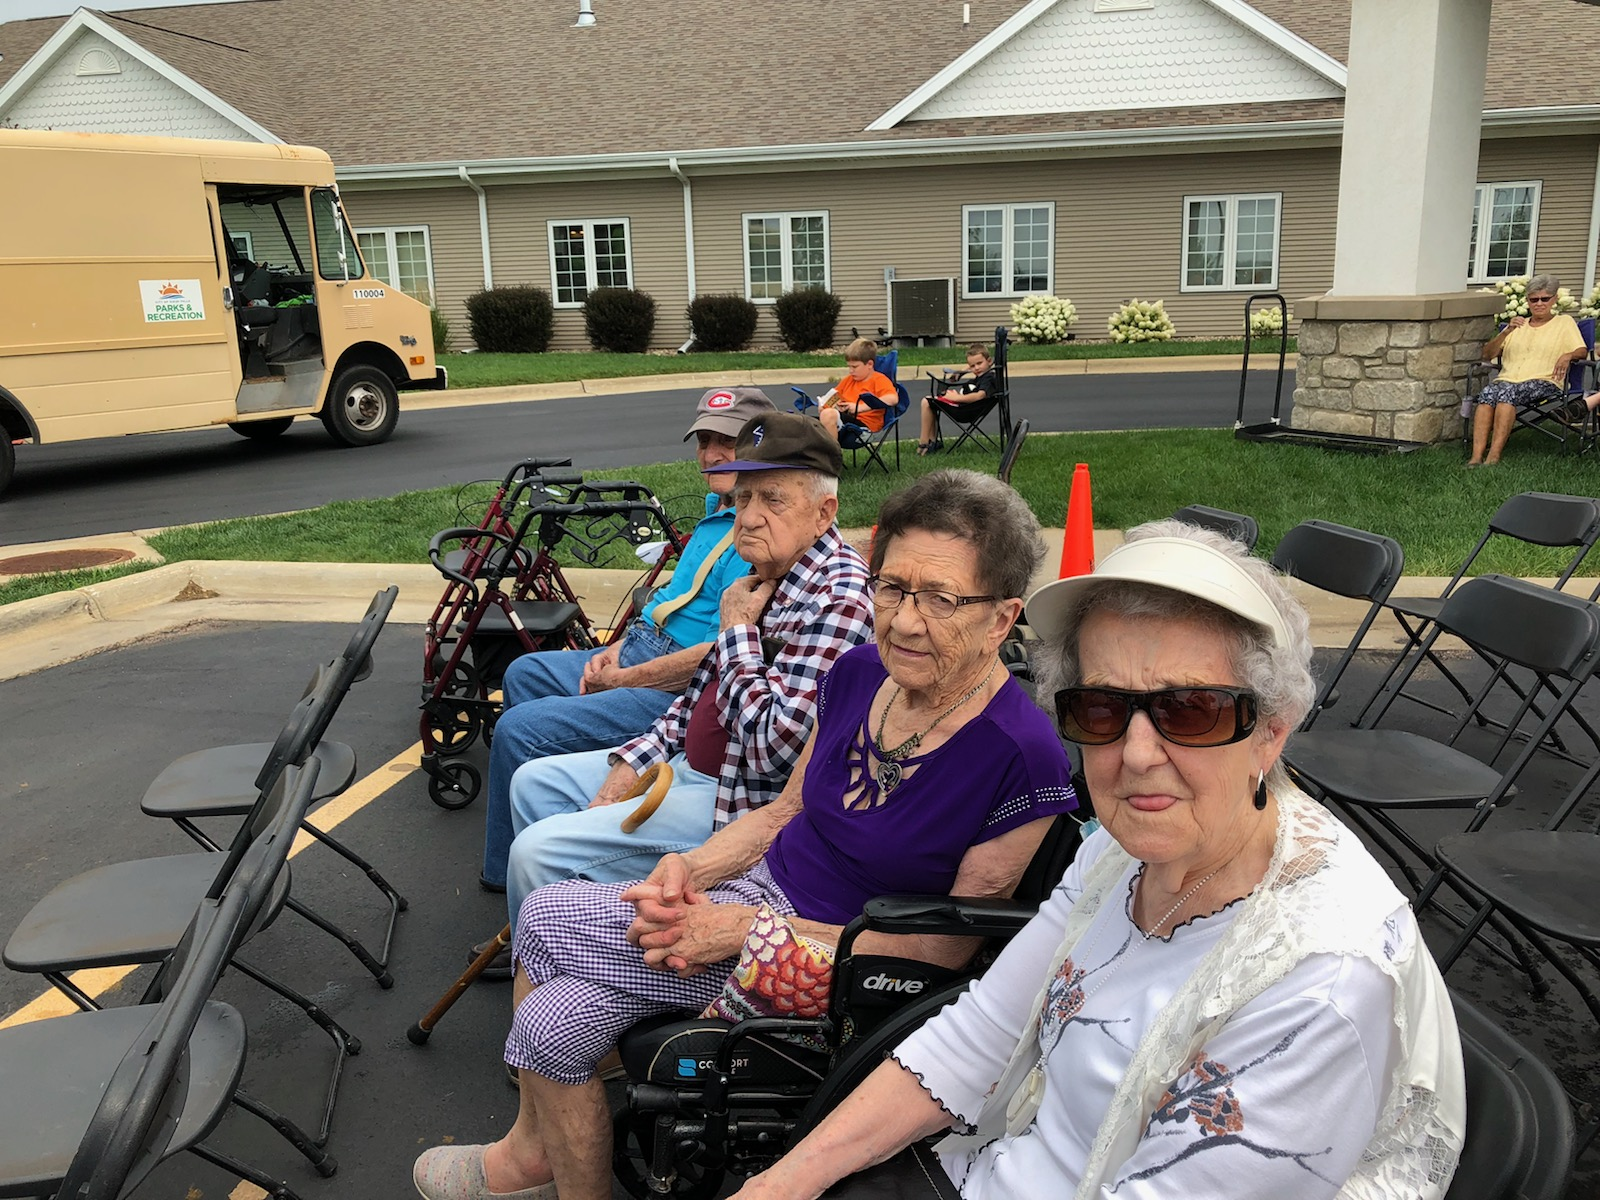 Residents excited for the Municipal Band to start!